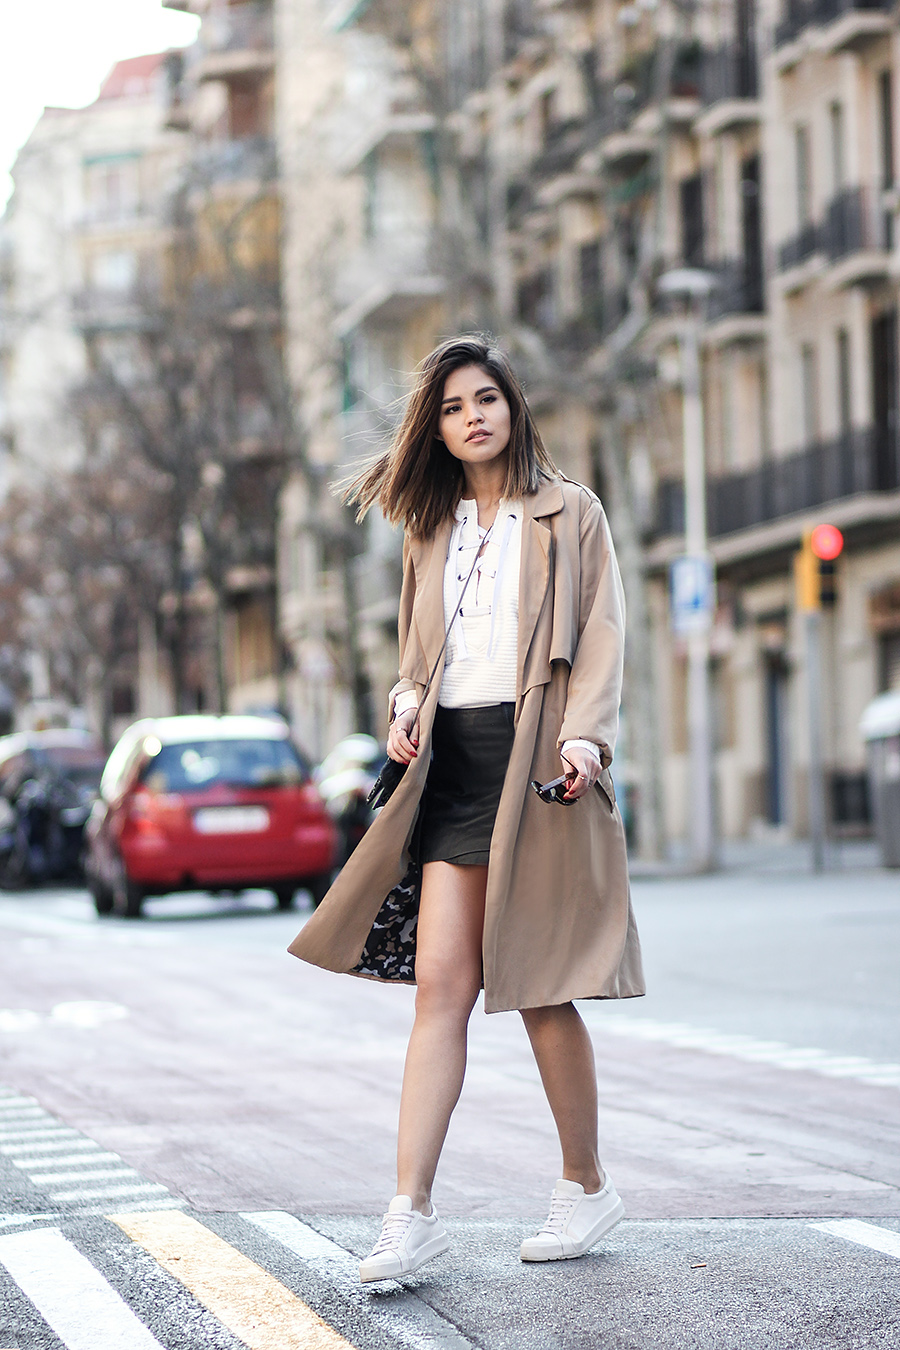 f4bc27bfb8 Adriana Gastélum pairs a lace up sweater with a mini skirt and a camel  coloured trench